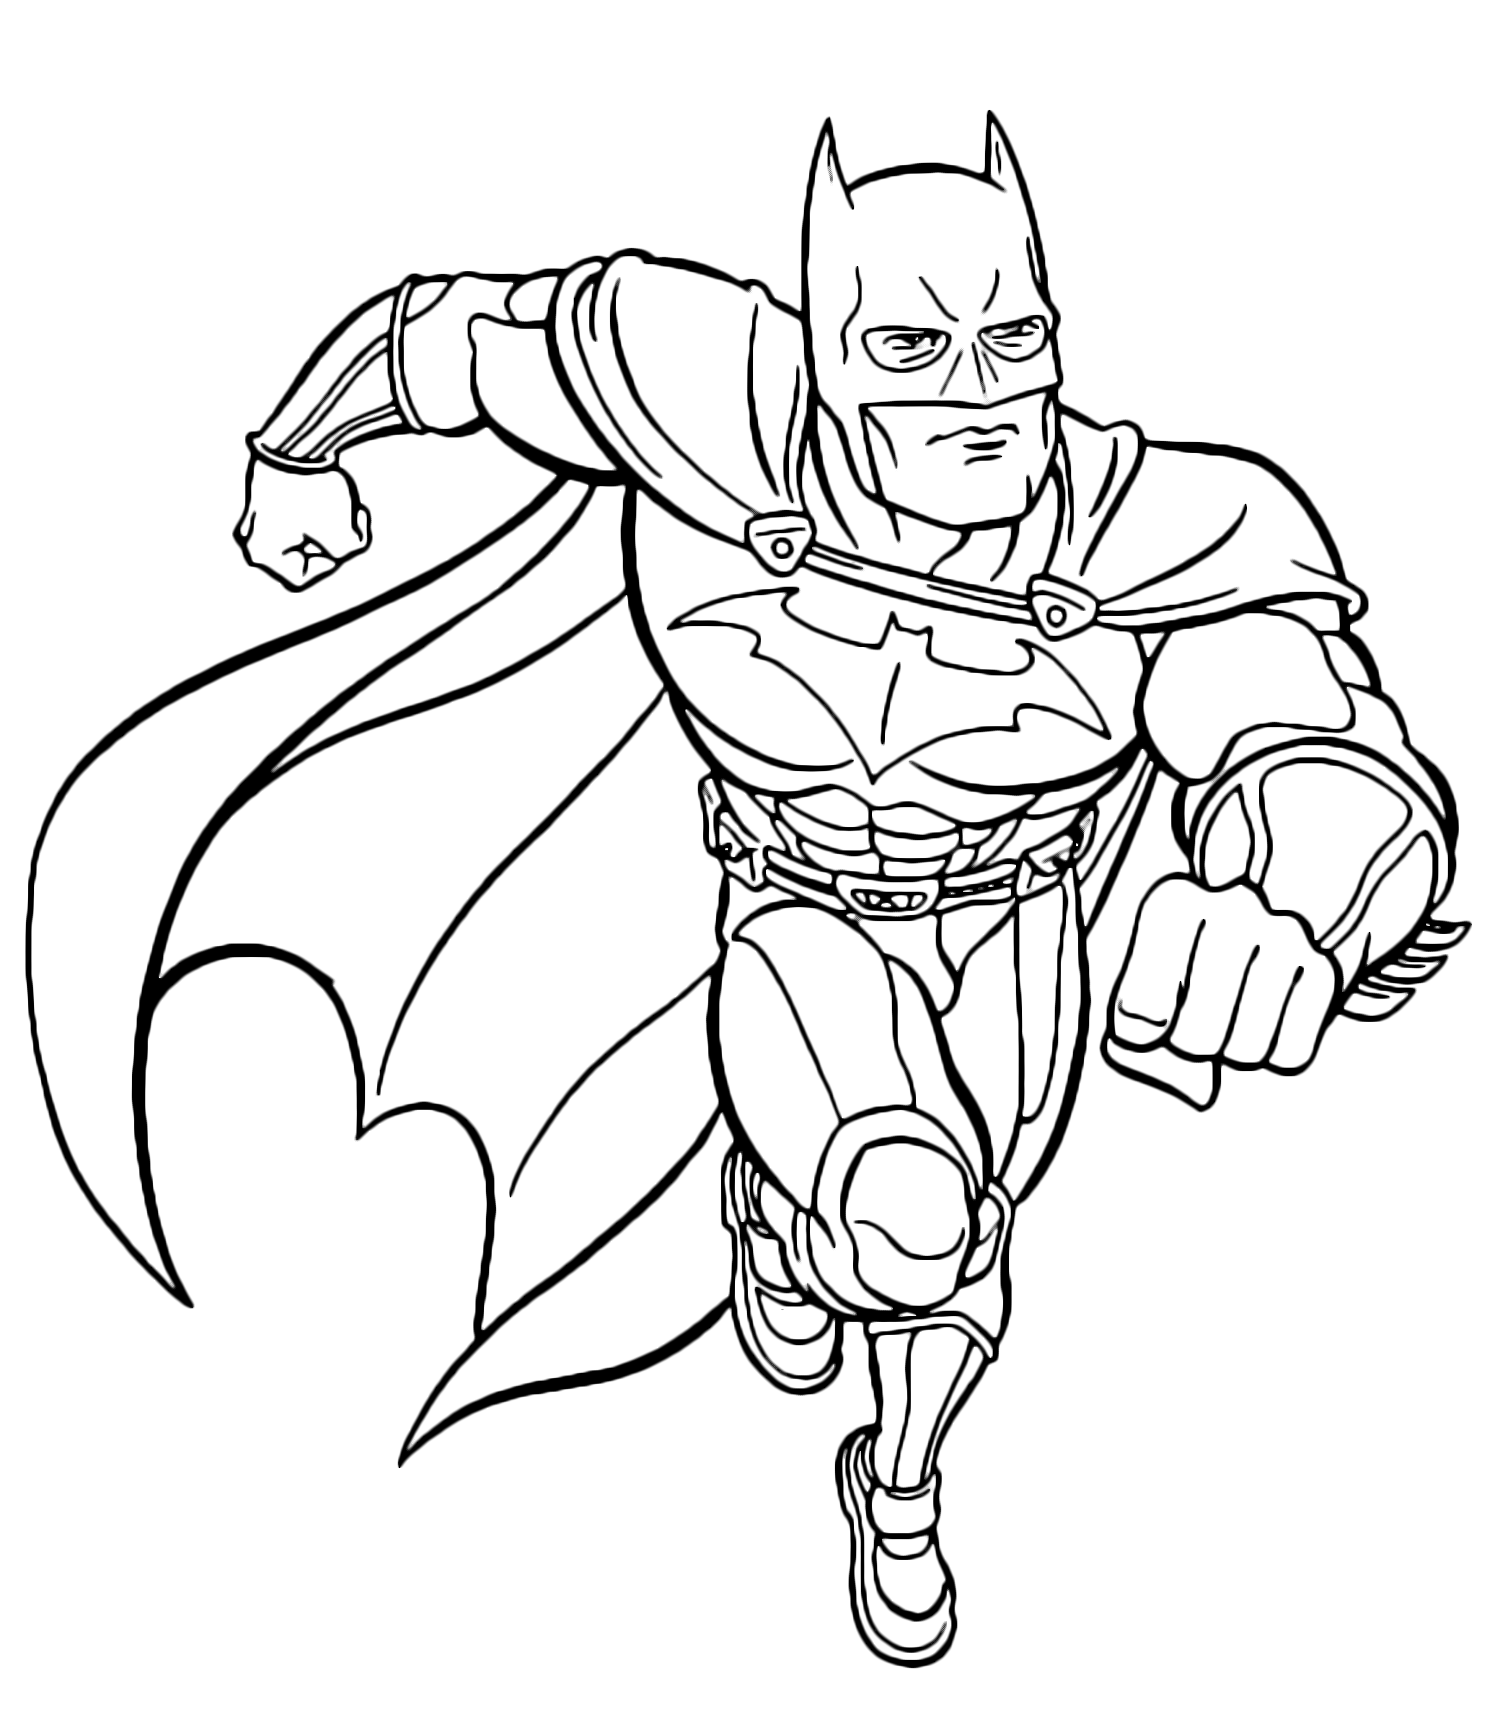 Batman batman corre per sconfiggere i nemici for Disegni spiderman da colorare gratis